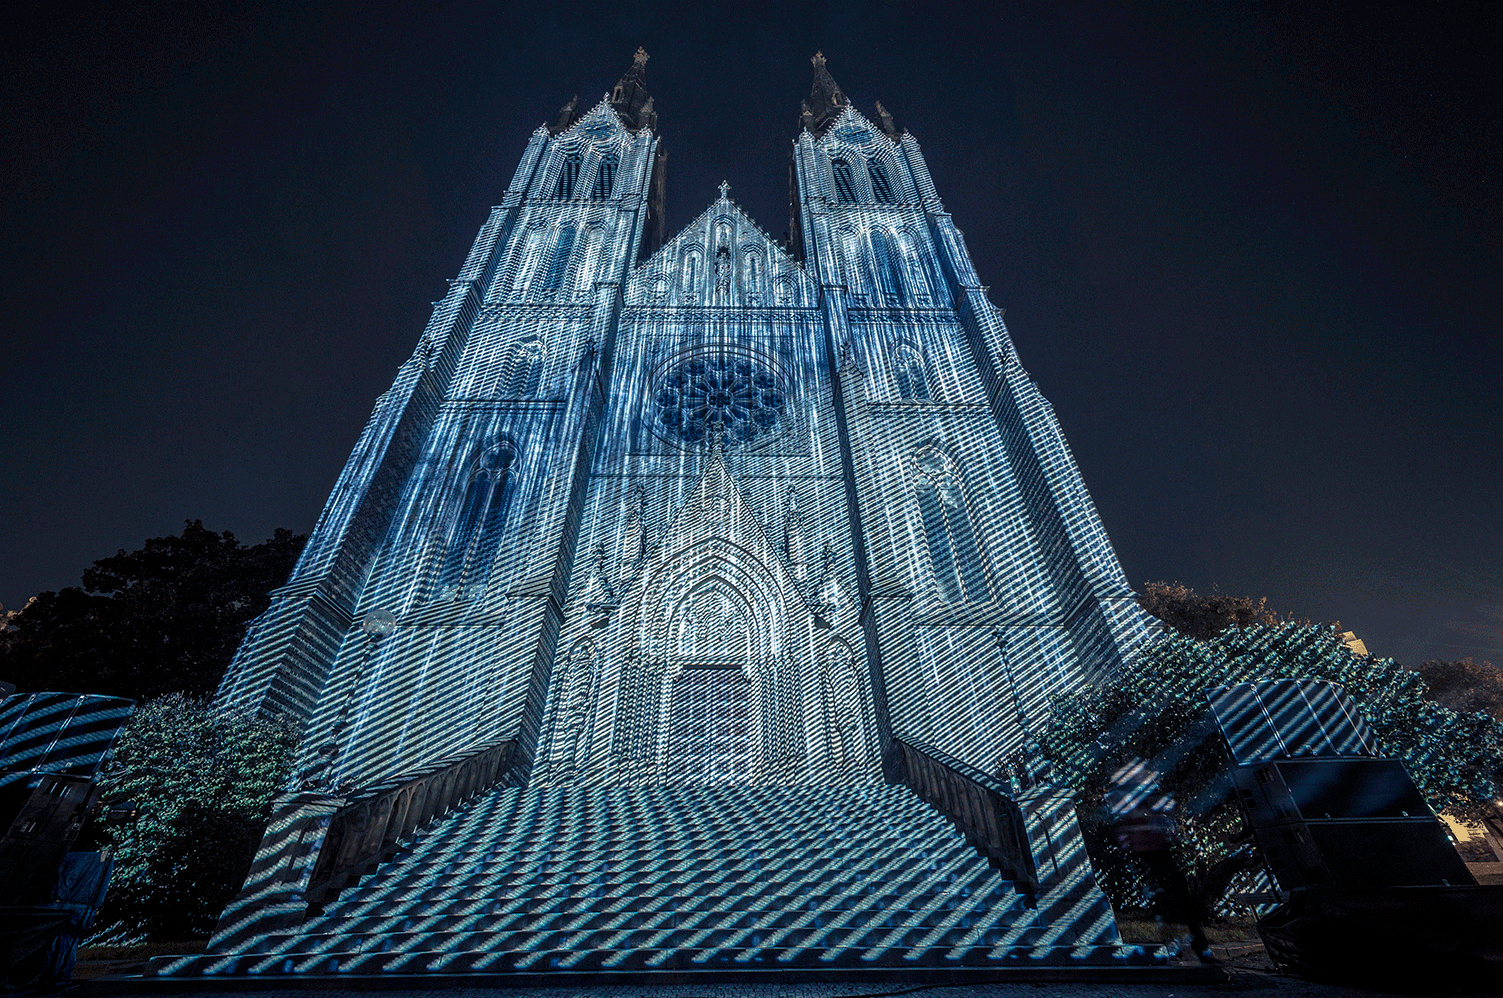 3D mapping projected onto the façade of the Santa Ludmila Church in Prague.